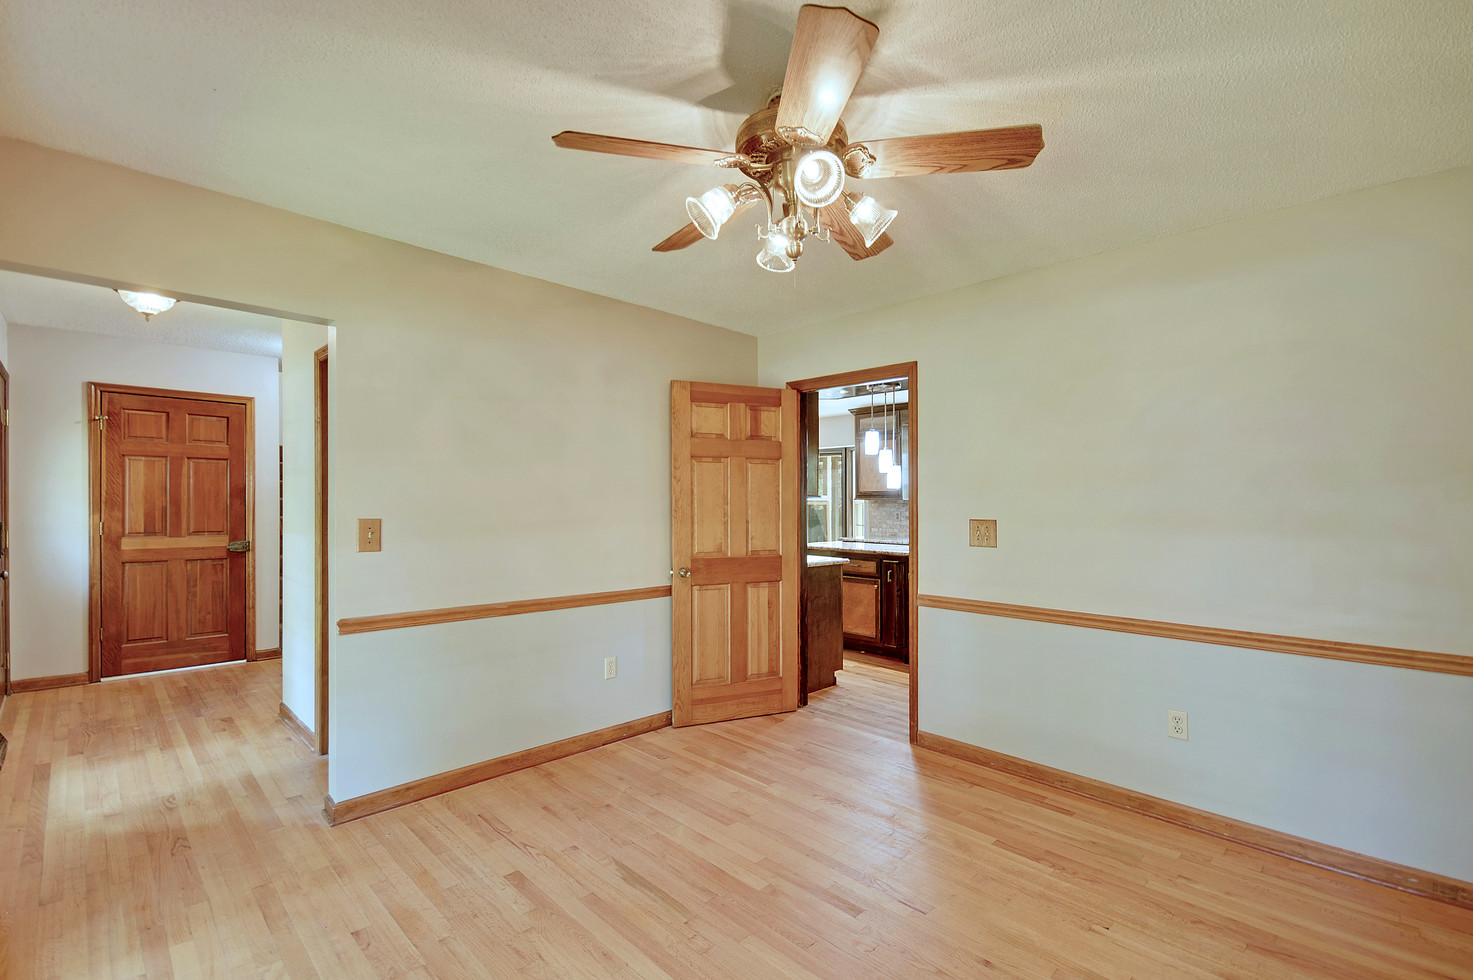 14. 323 Eastover Circle - South Pointe -